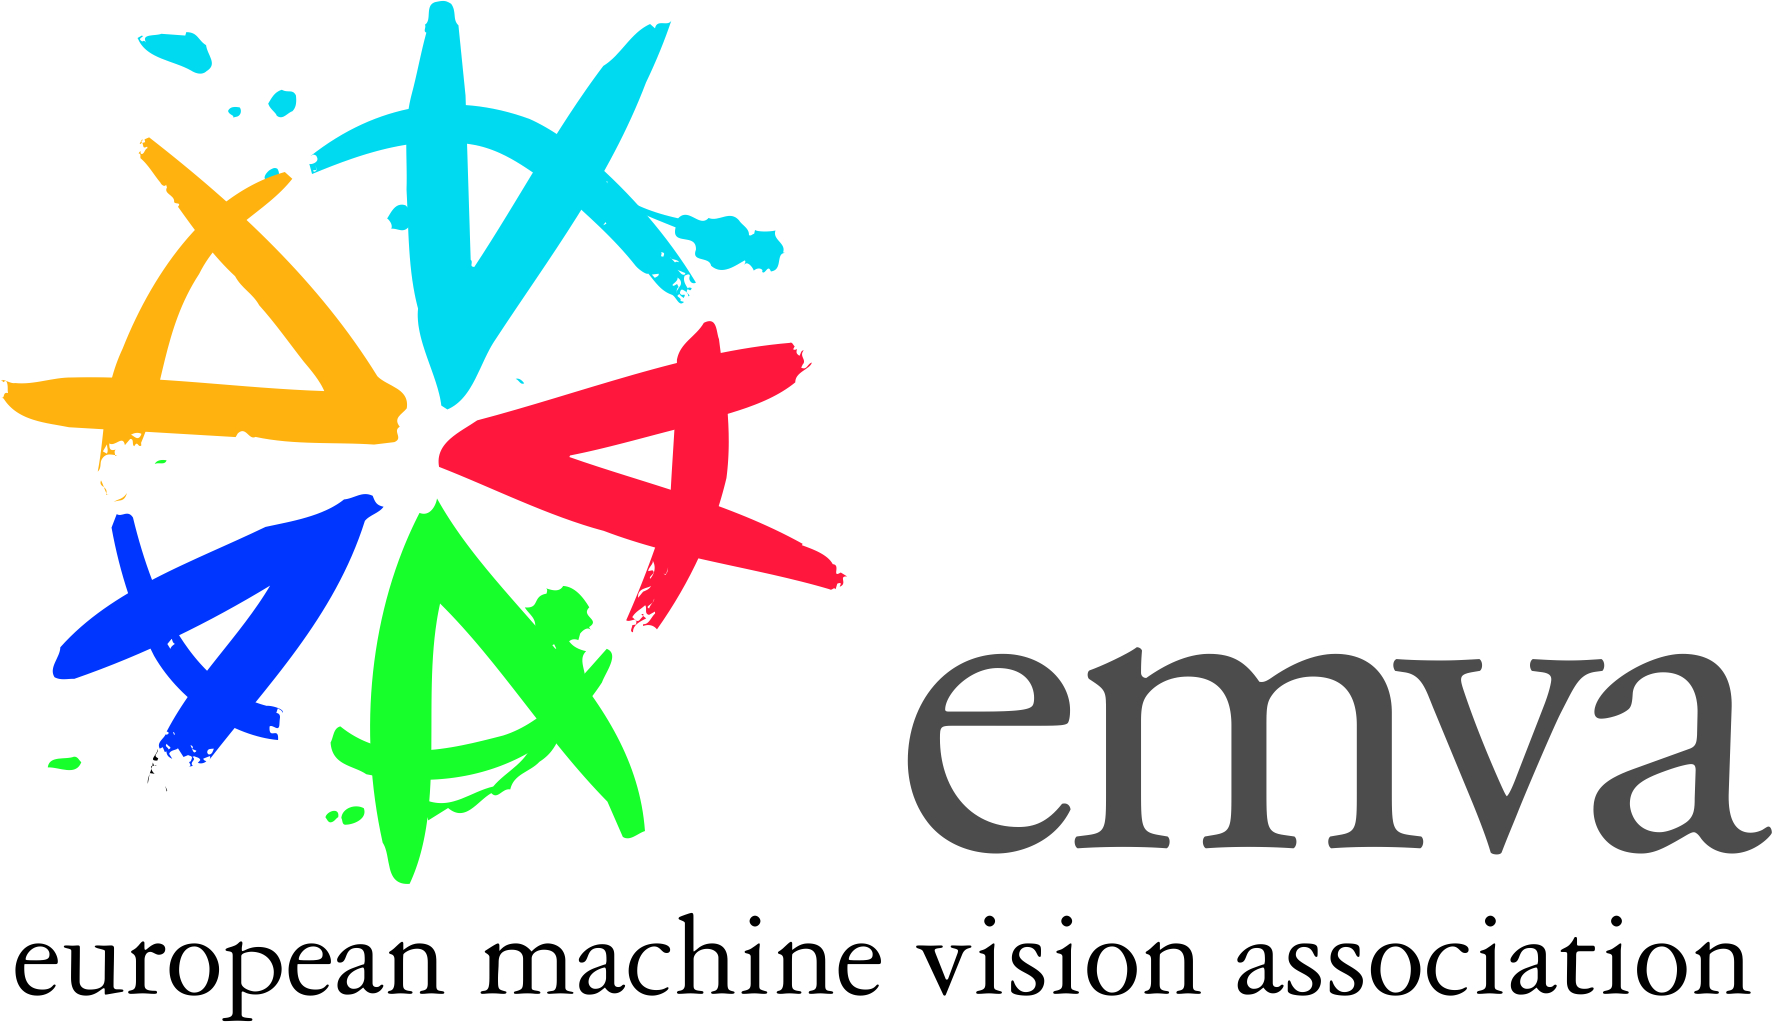 EMVA European Machine Vision Association